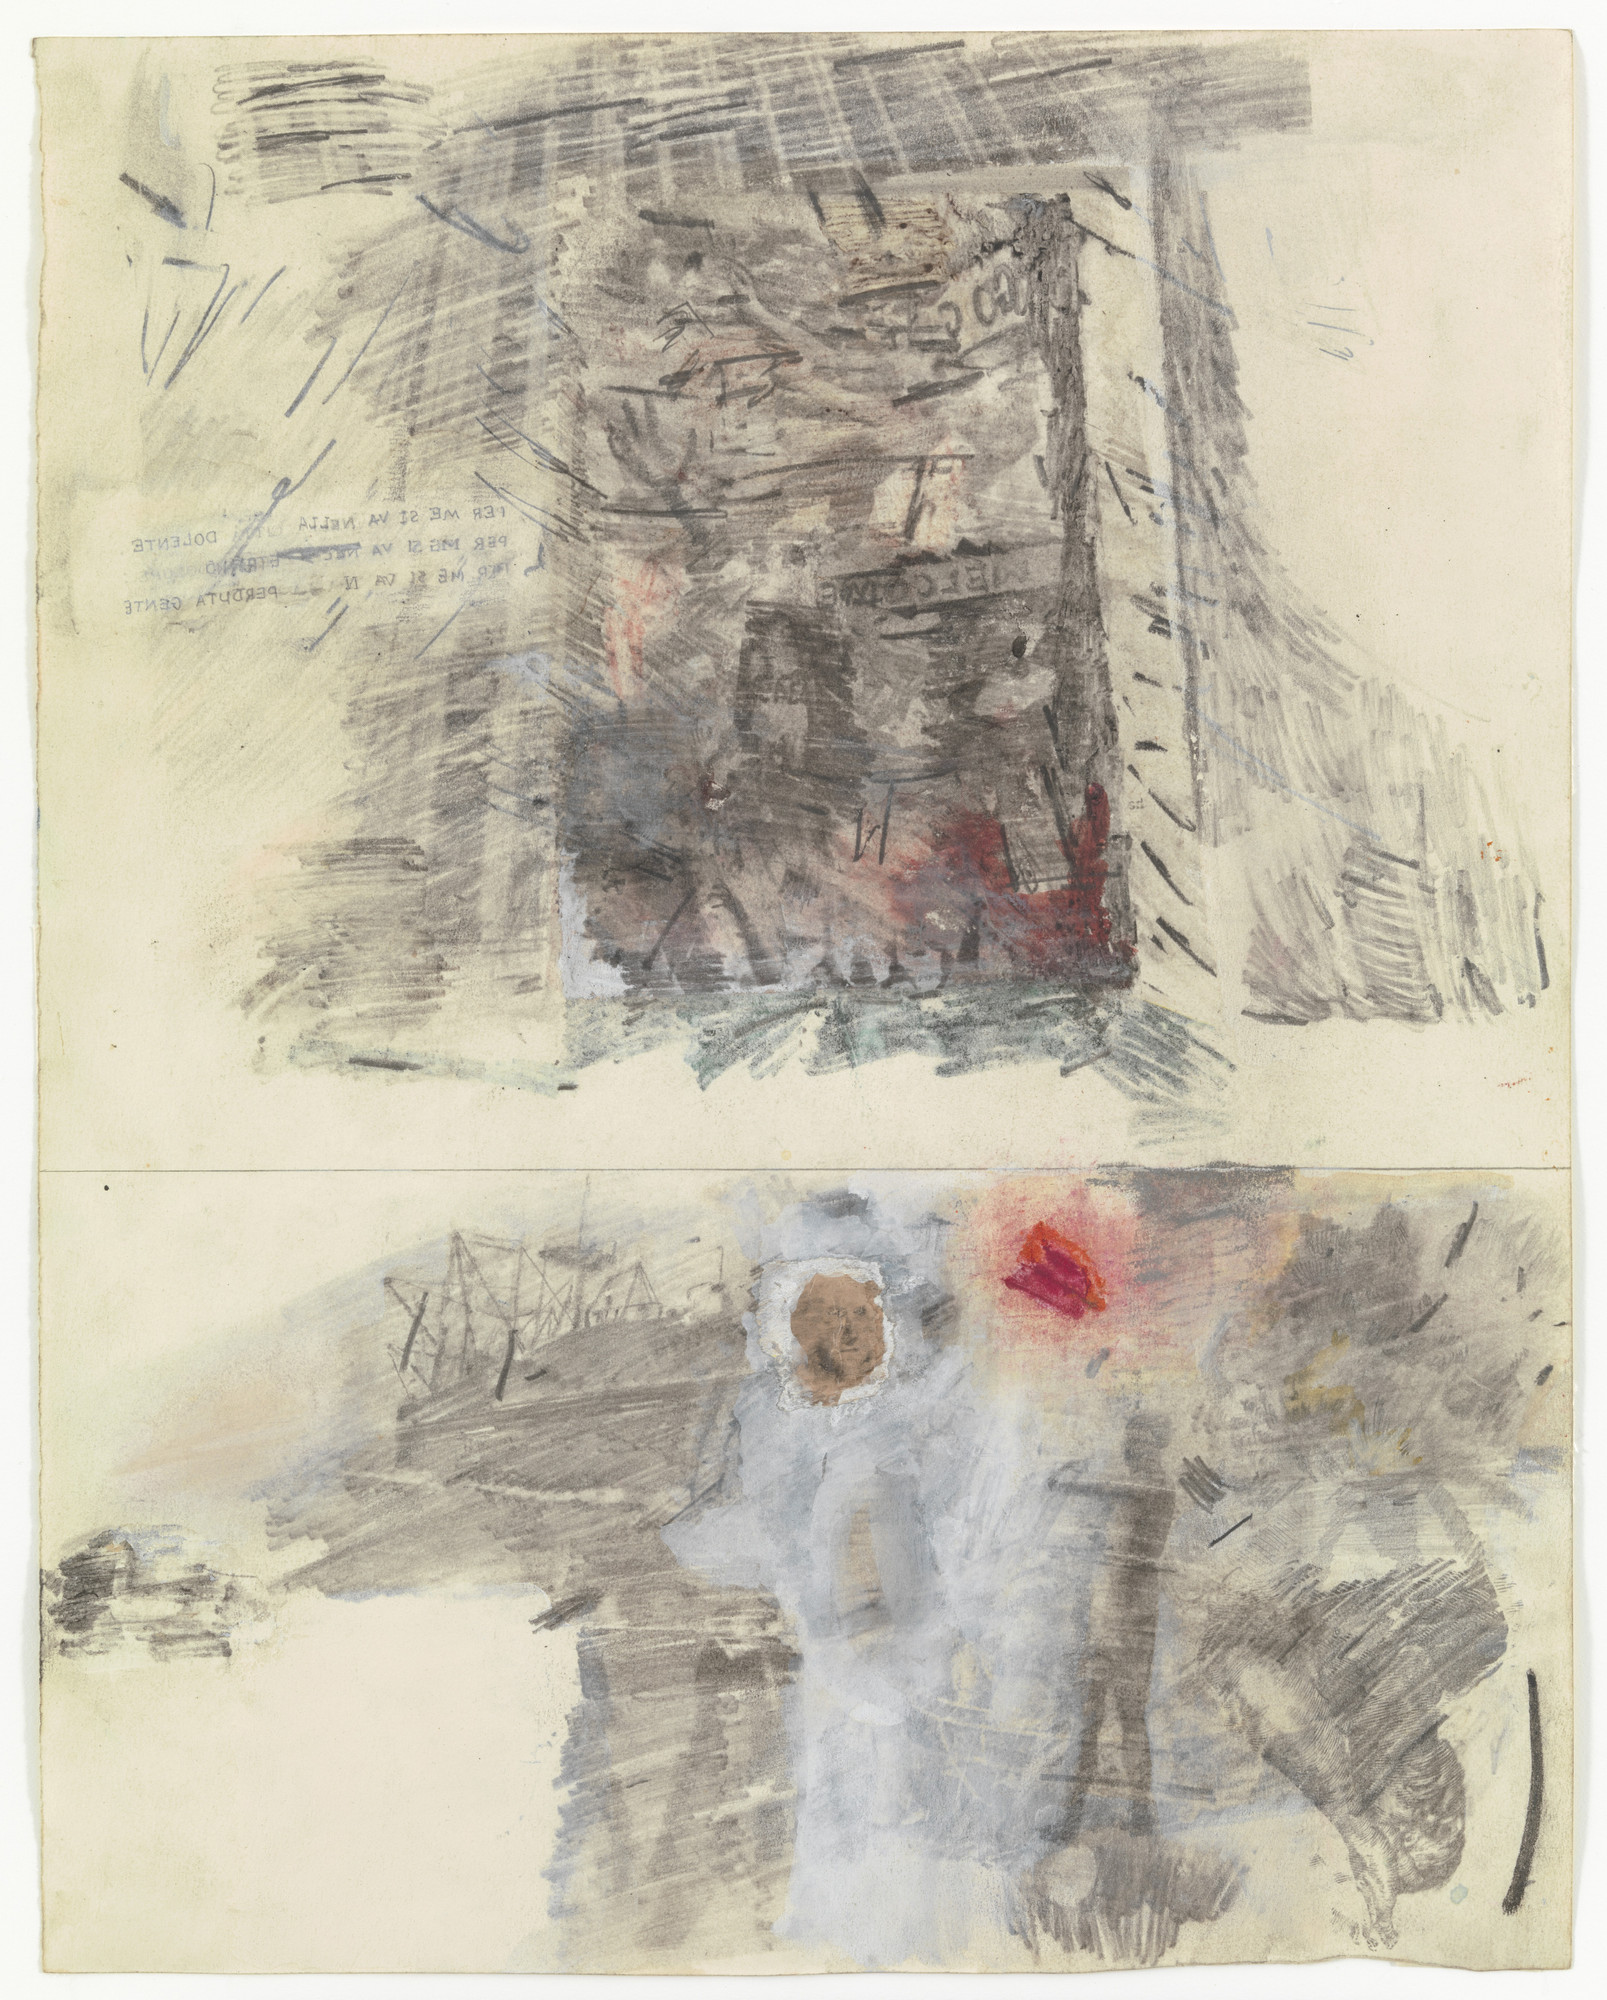 Robert Rauschenberg. Canto III: The Vestibule of Hell, The Opportunists from the series Thirty-Four Illustrations for Dante's Inferno. (1958)